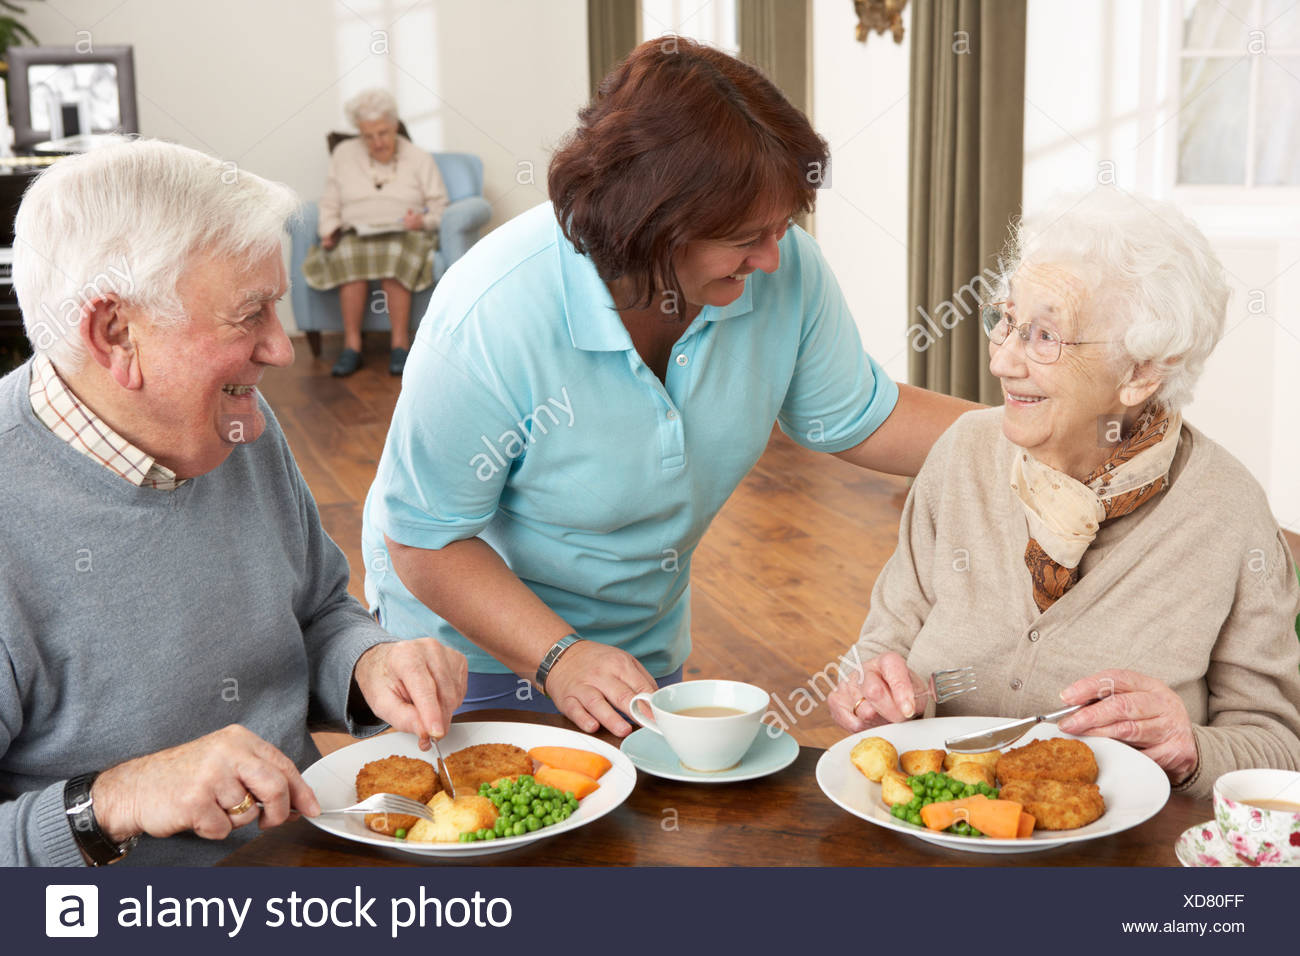 Senior Couple Being Served Meal By Carer - Stock Image